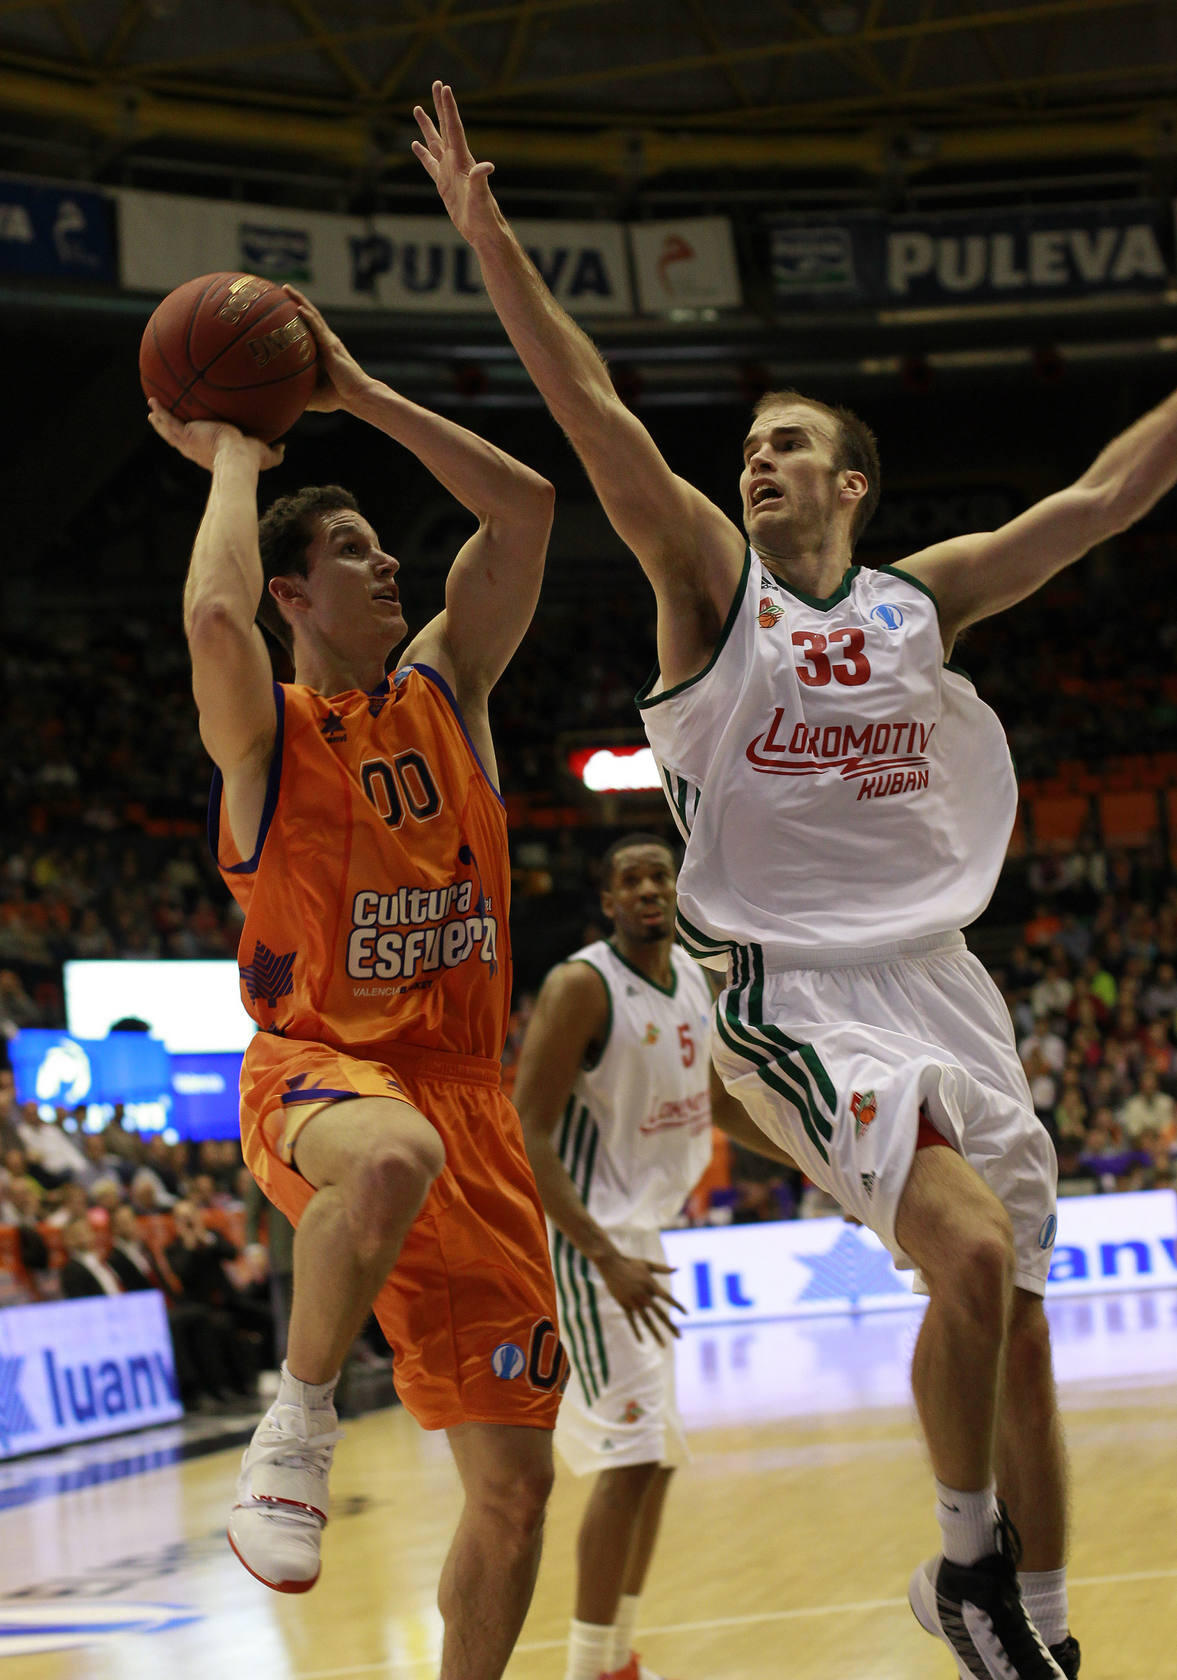 Las mejores im&aacute;genes del Valencia Basket-Lokomotiv Kuban